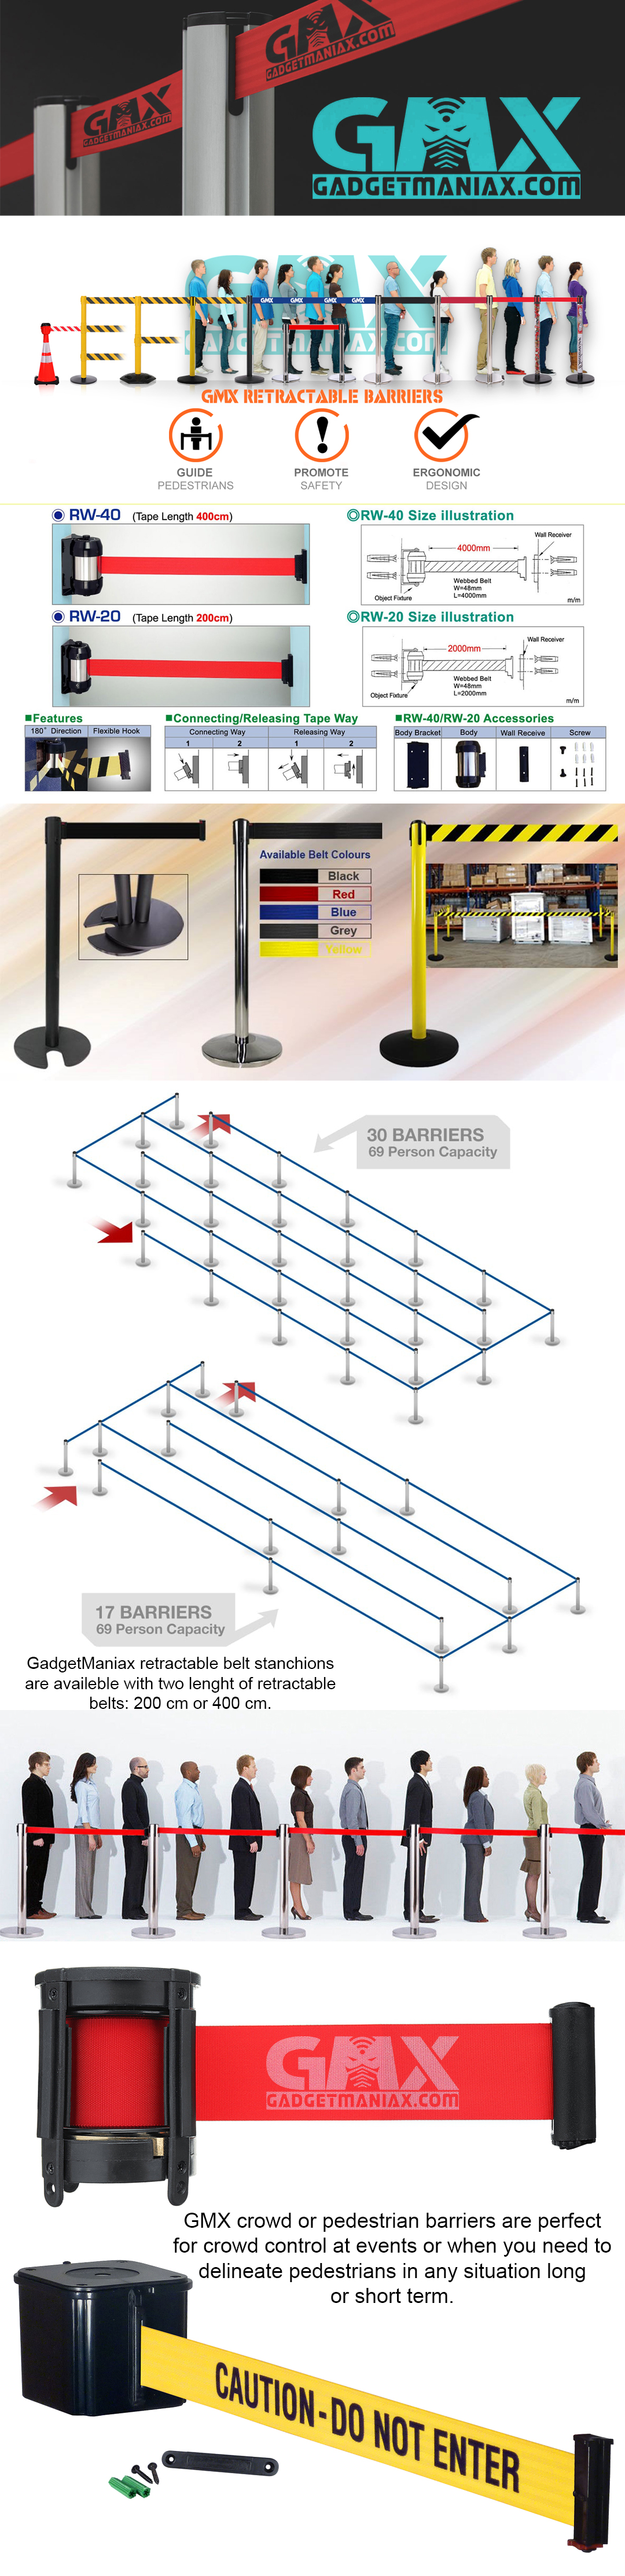 GMX crowd or pedestrian barriers are ideal for crowd control at events or when you need to delineate pedestrians in any situation long or short term. GadgetManiax retractable belt stanchions are availeble with two lenght of retractable belts:200 cm or 400 cm.